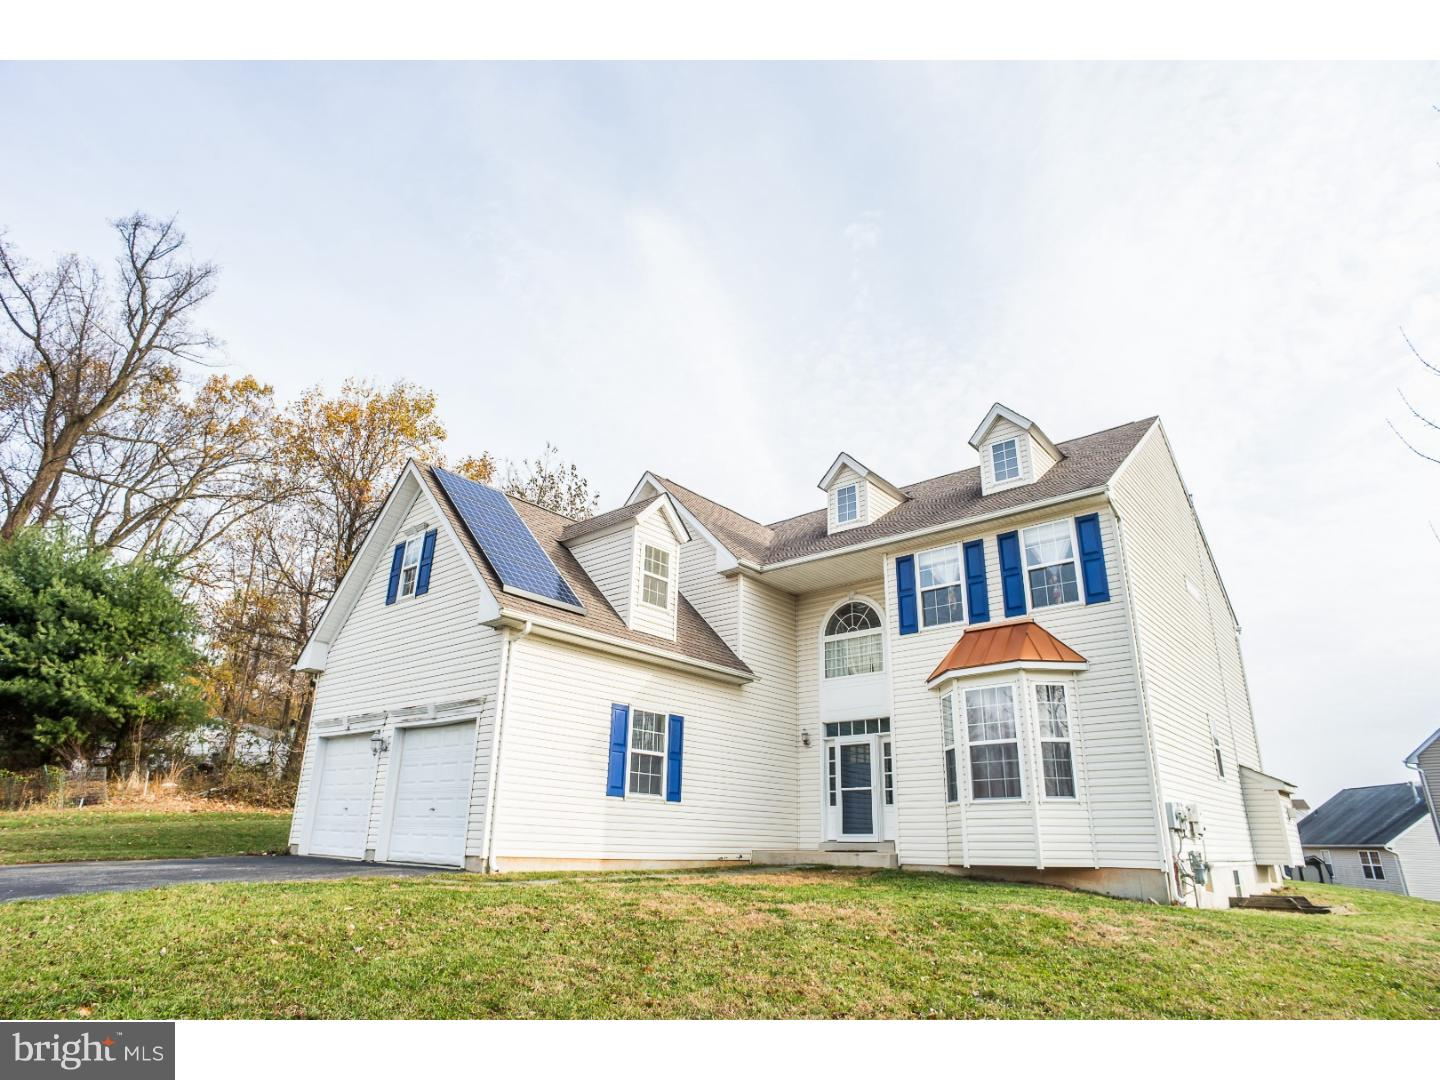 713 CARRIAGE CIRCLE, UPPER CHICHESTER, PA 19014